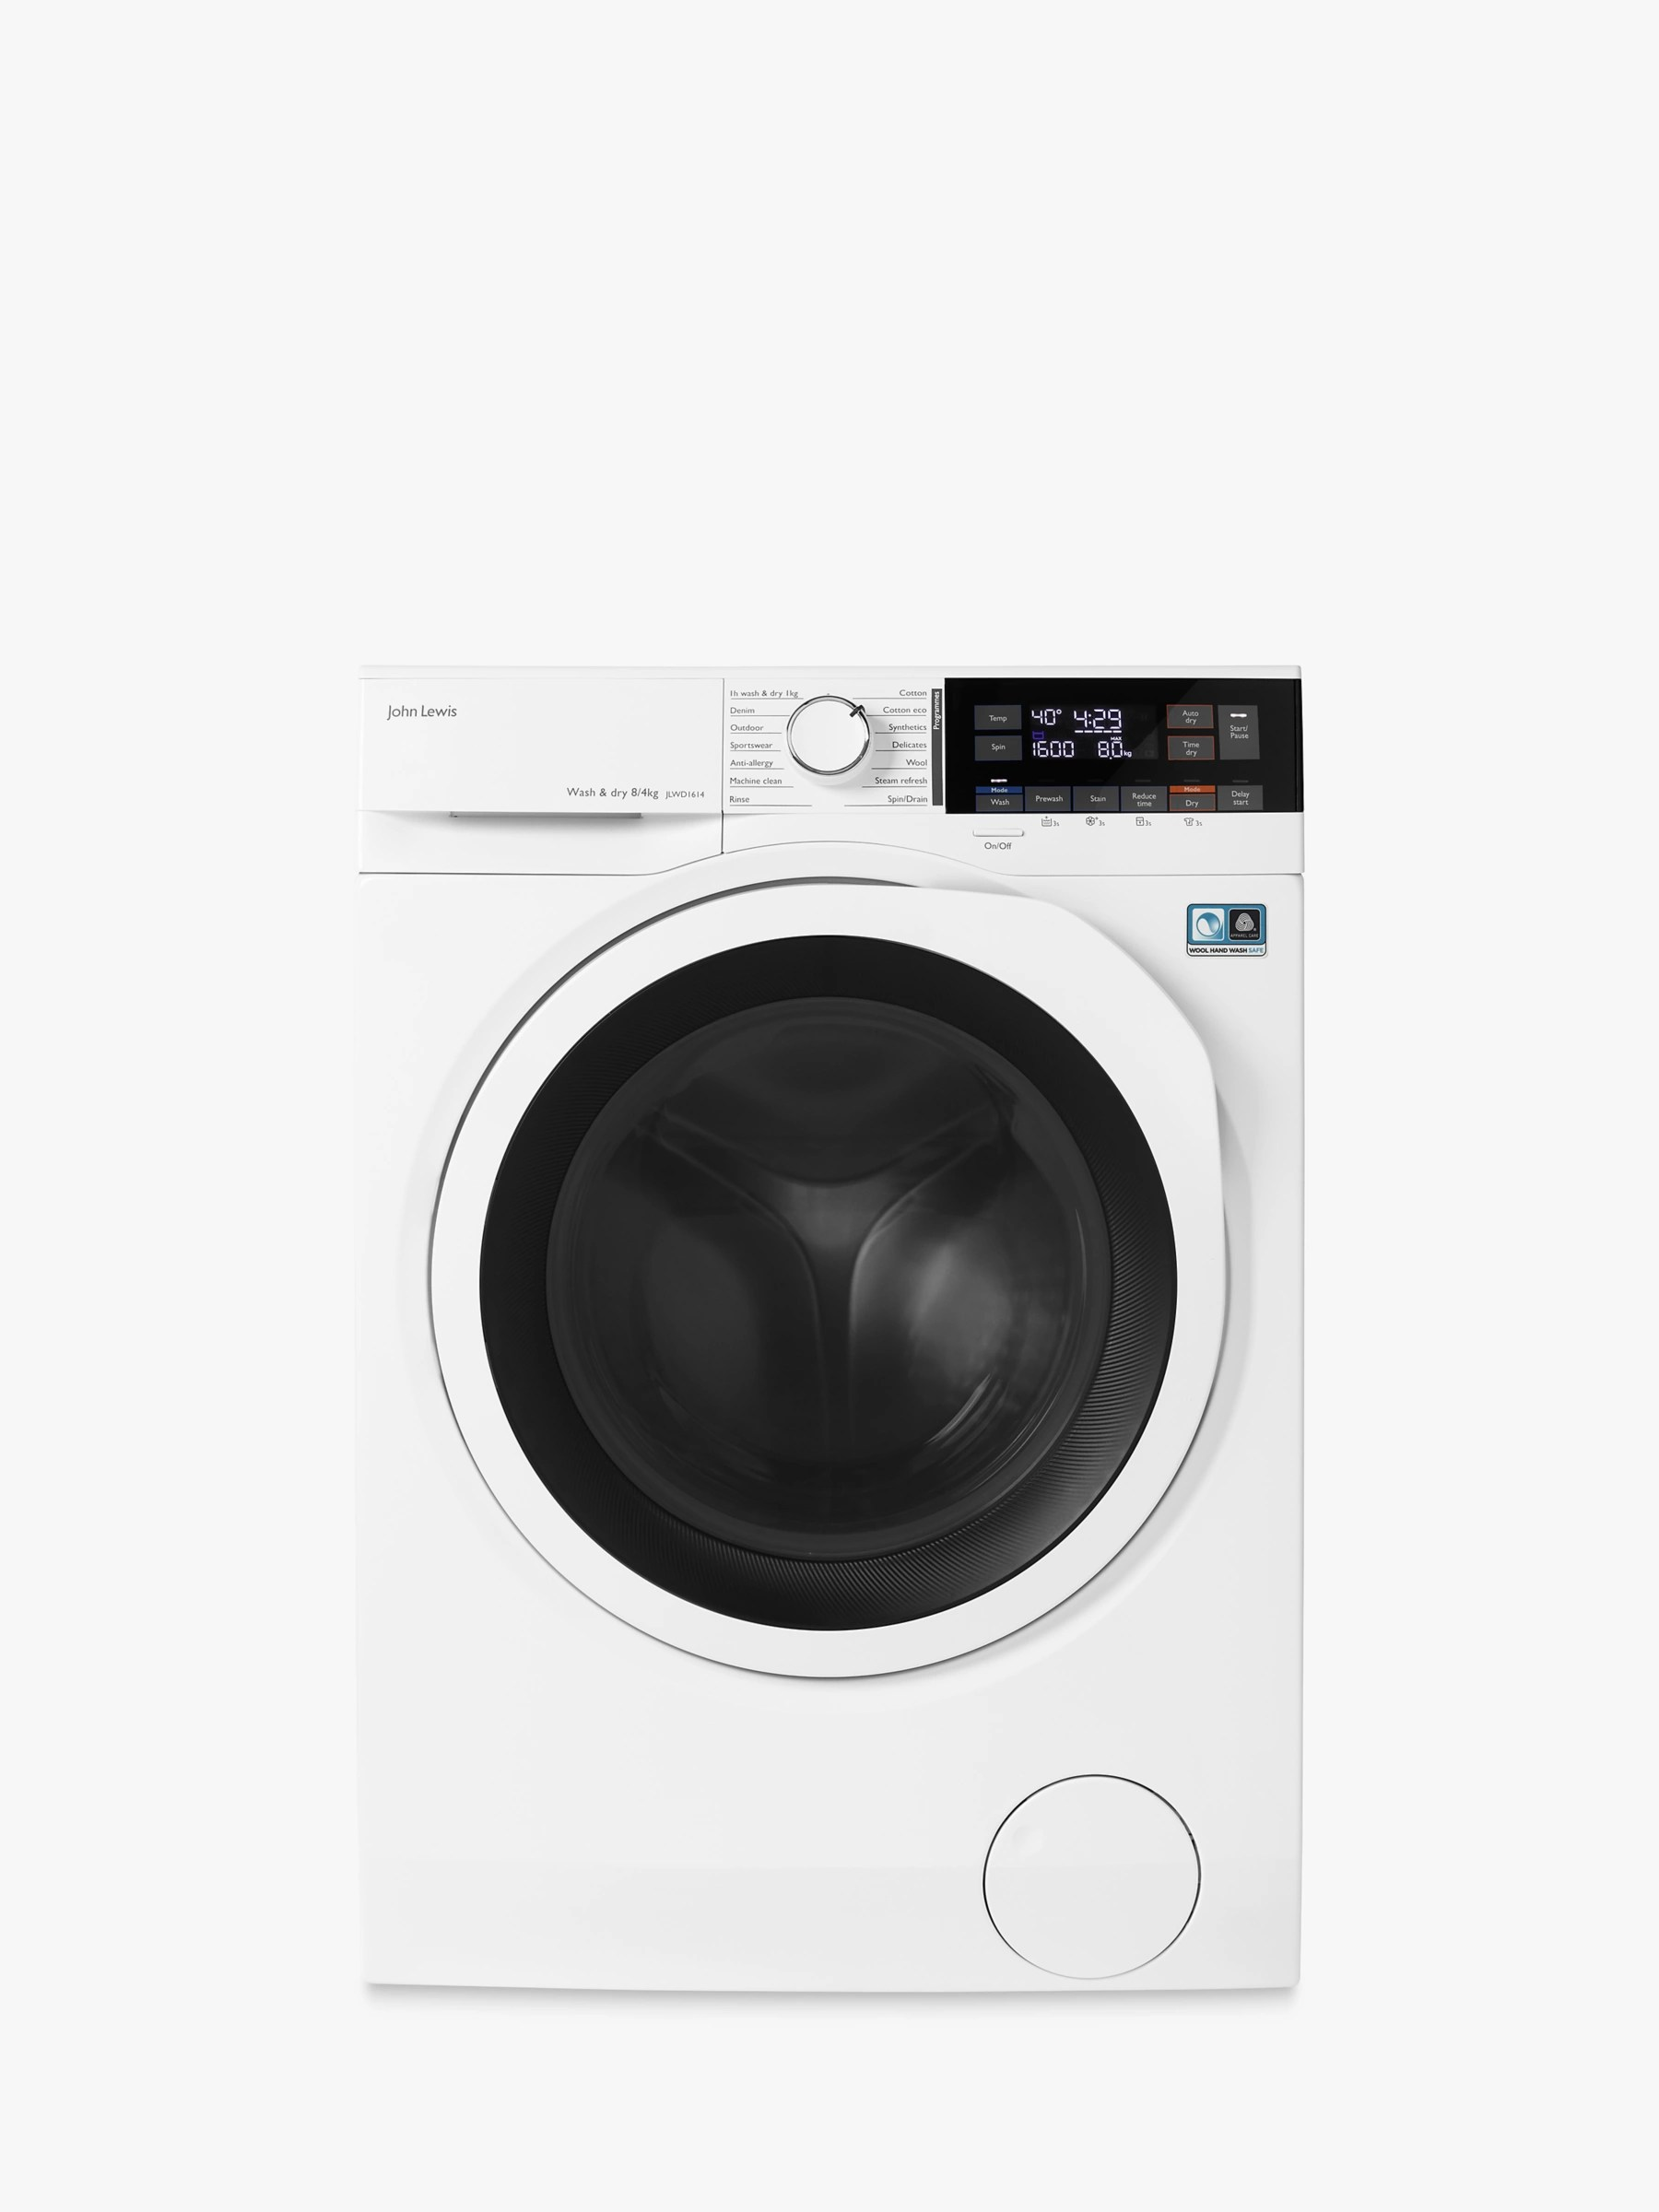 hight resolution of john lewis partners jlwd1614 freestanding washer dryer 8kg wash 4kg dry load a energy rating 1600rpm spin white at john lewis partners